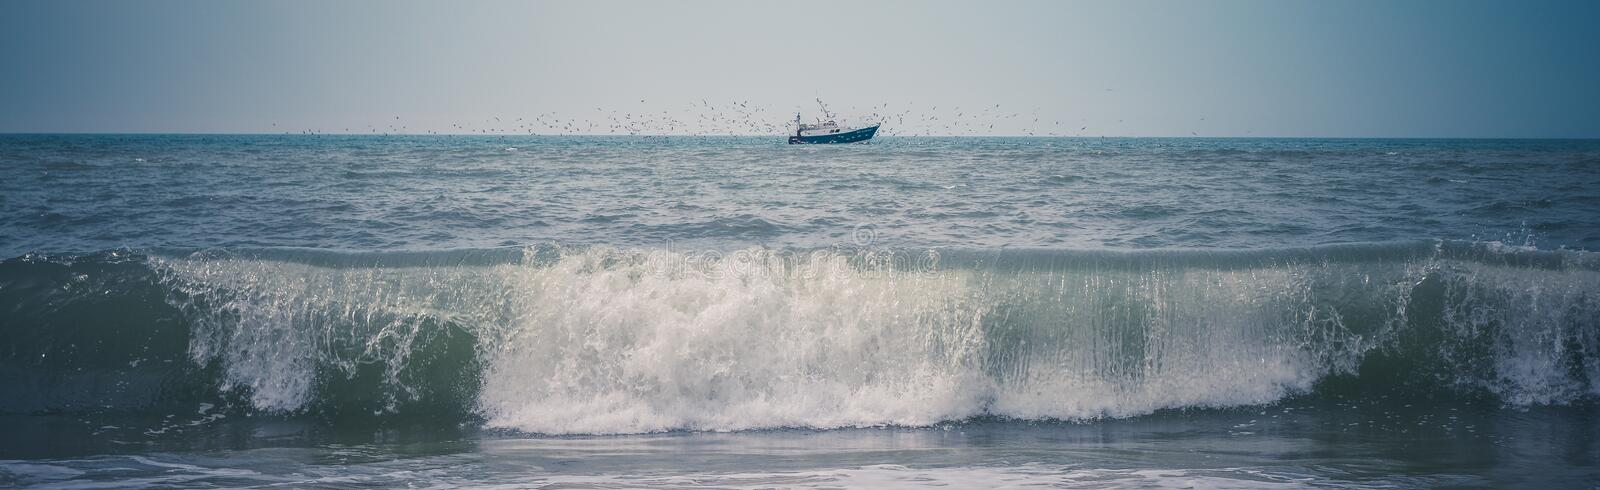 Black Ship on Green Sea Under White and Blue Sky at Daytime stock photography